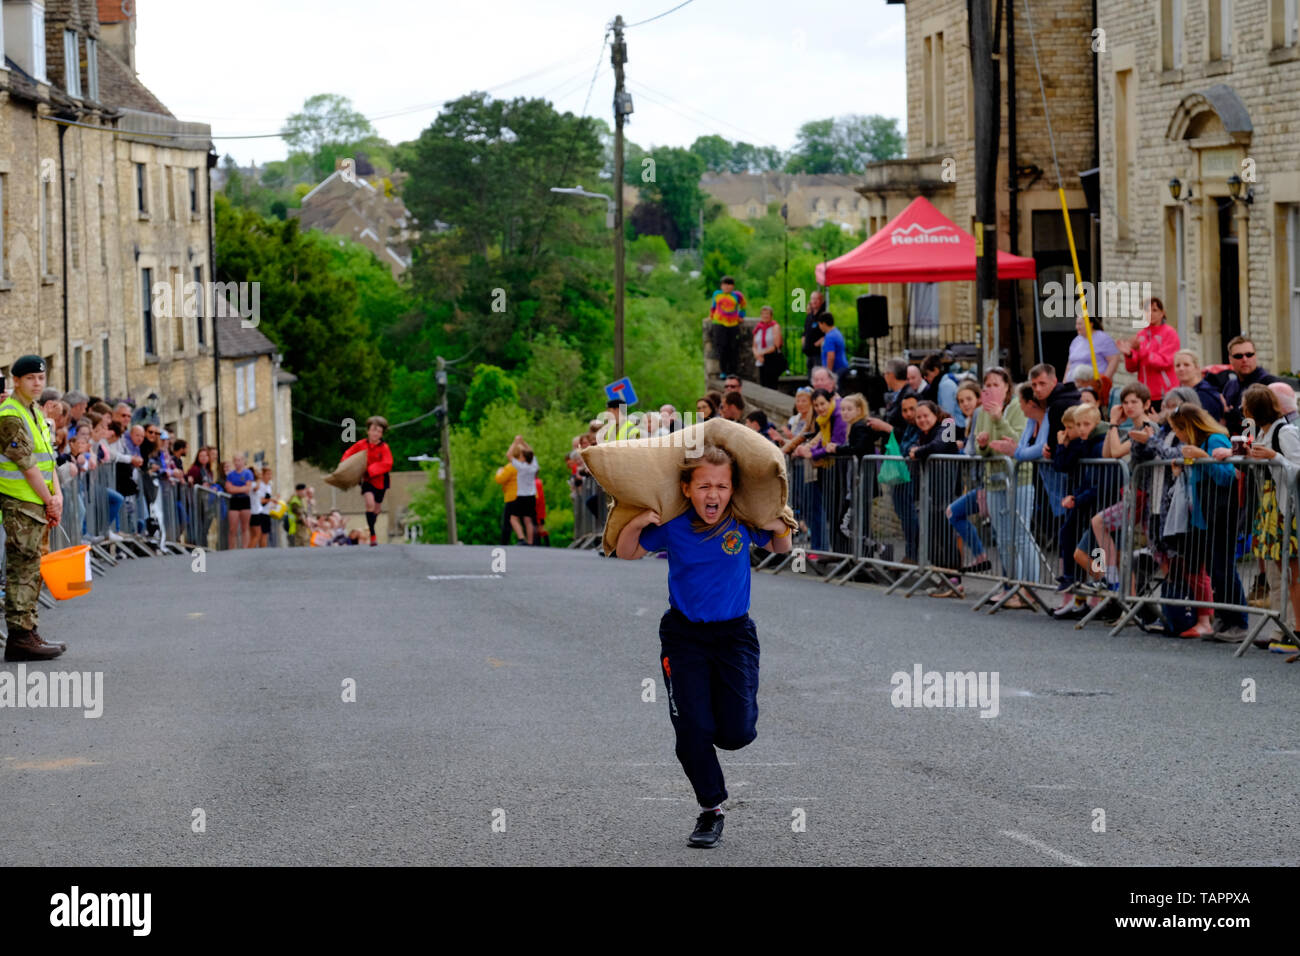 Tetbury, Gloucestershire, UK. 27th May, 2019. The annual races attract large crowds and raise money for local charities. Competitors race up steep Gumstool Hill in this pretty Cotswold town carrying a woolsack. The men carry a 60lb sack and the ladies a 30lb sack.This is the childrens race with a small sack. Credit: Mr Standfast/Alamy Live News - Stock Image